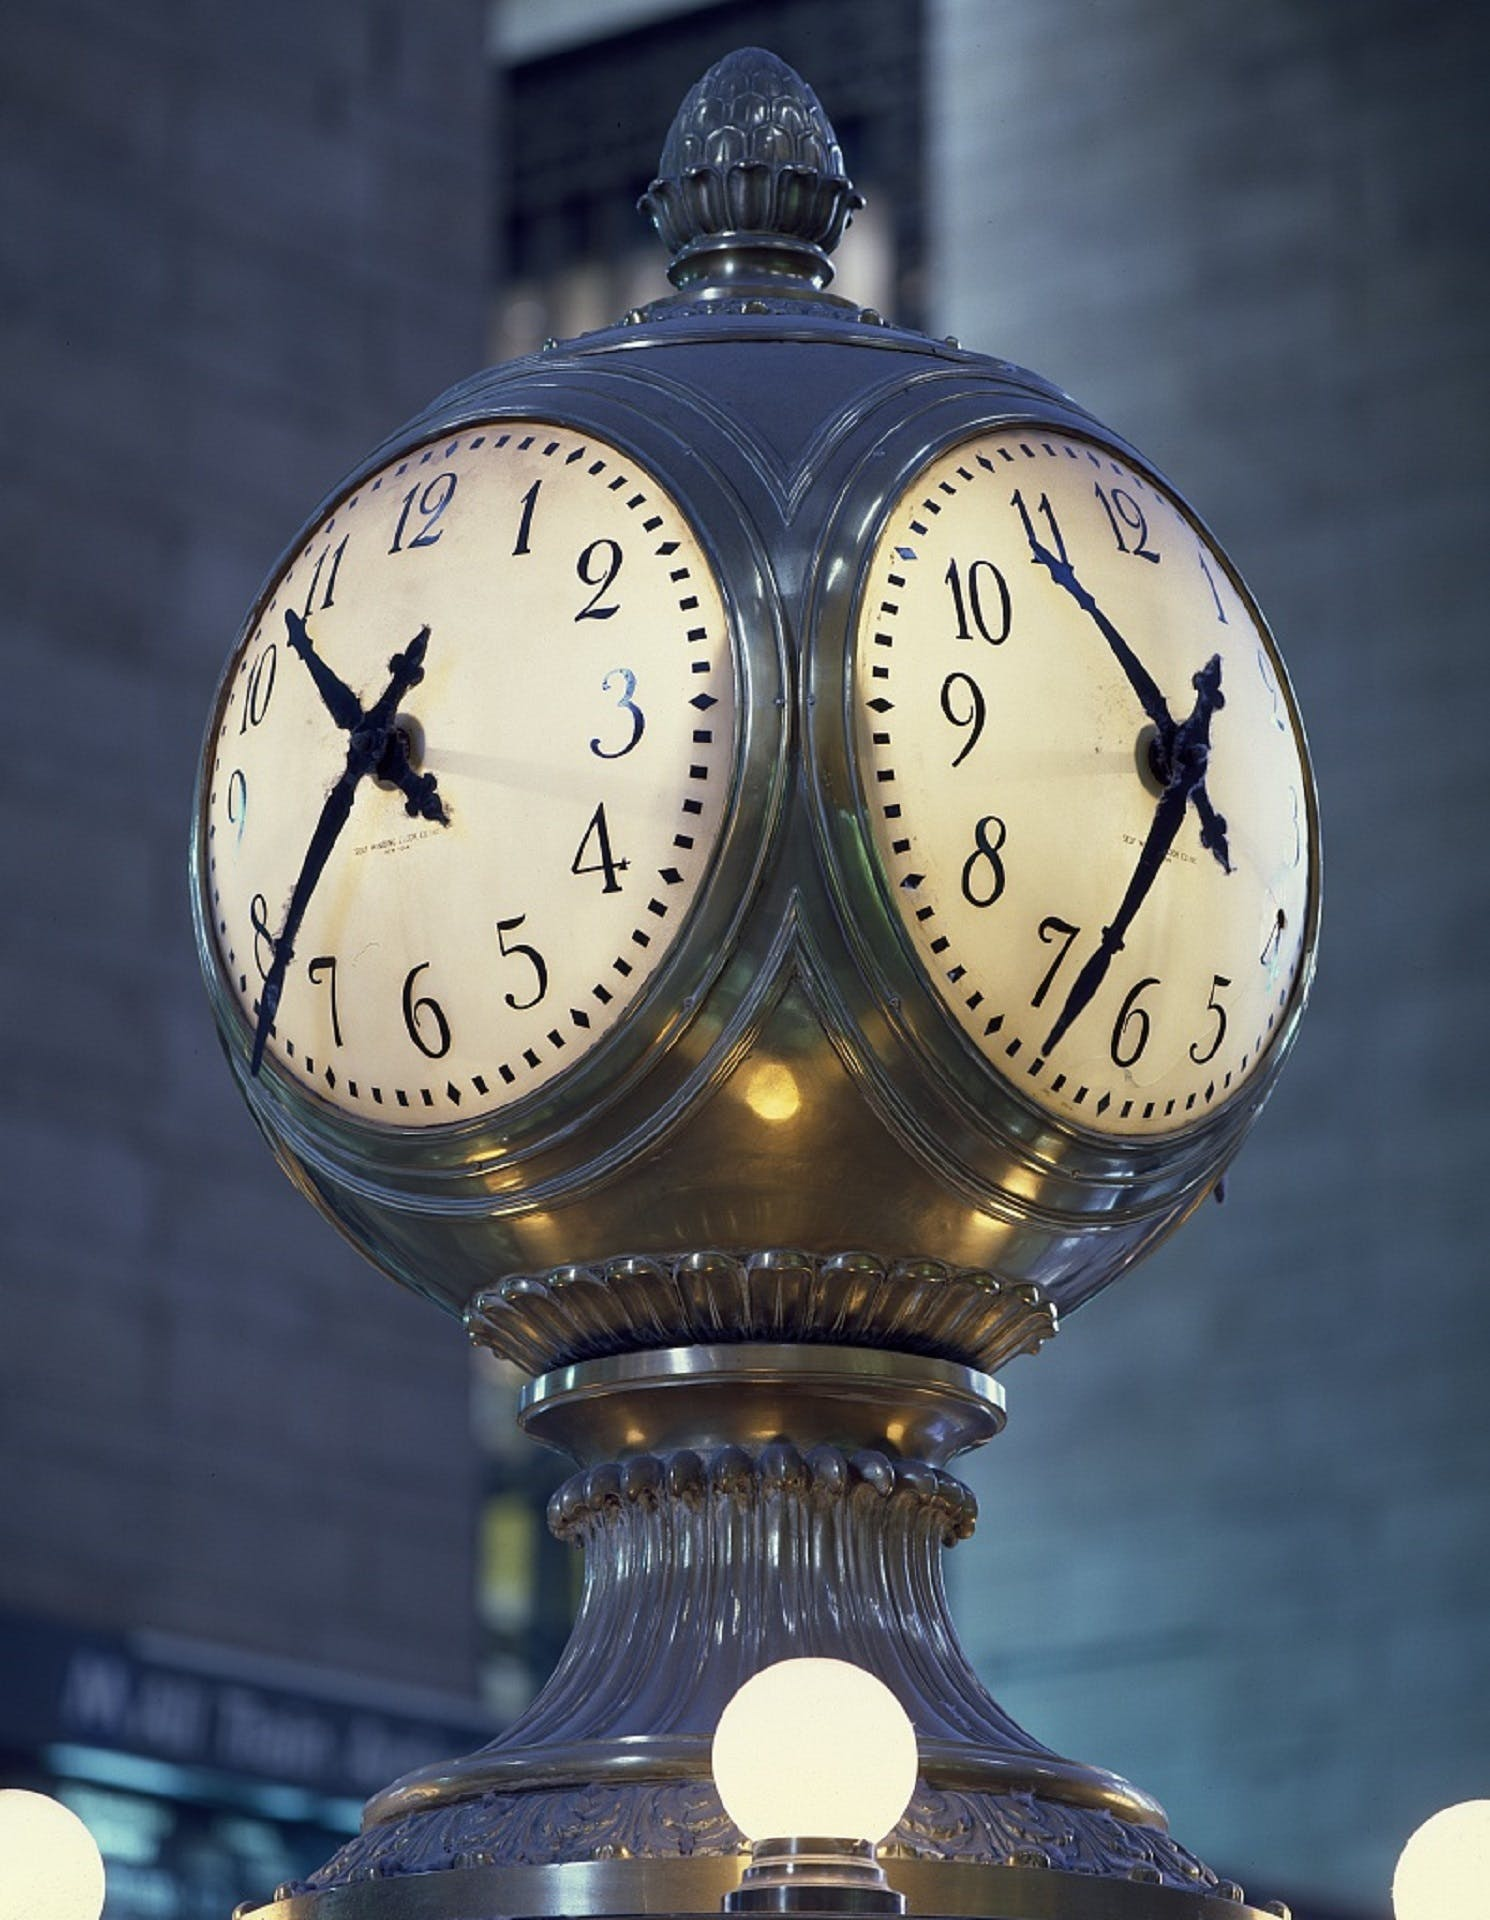 Free stock photo of time, manhattan, clock, grand central station